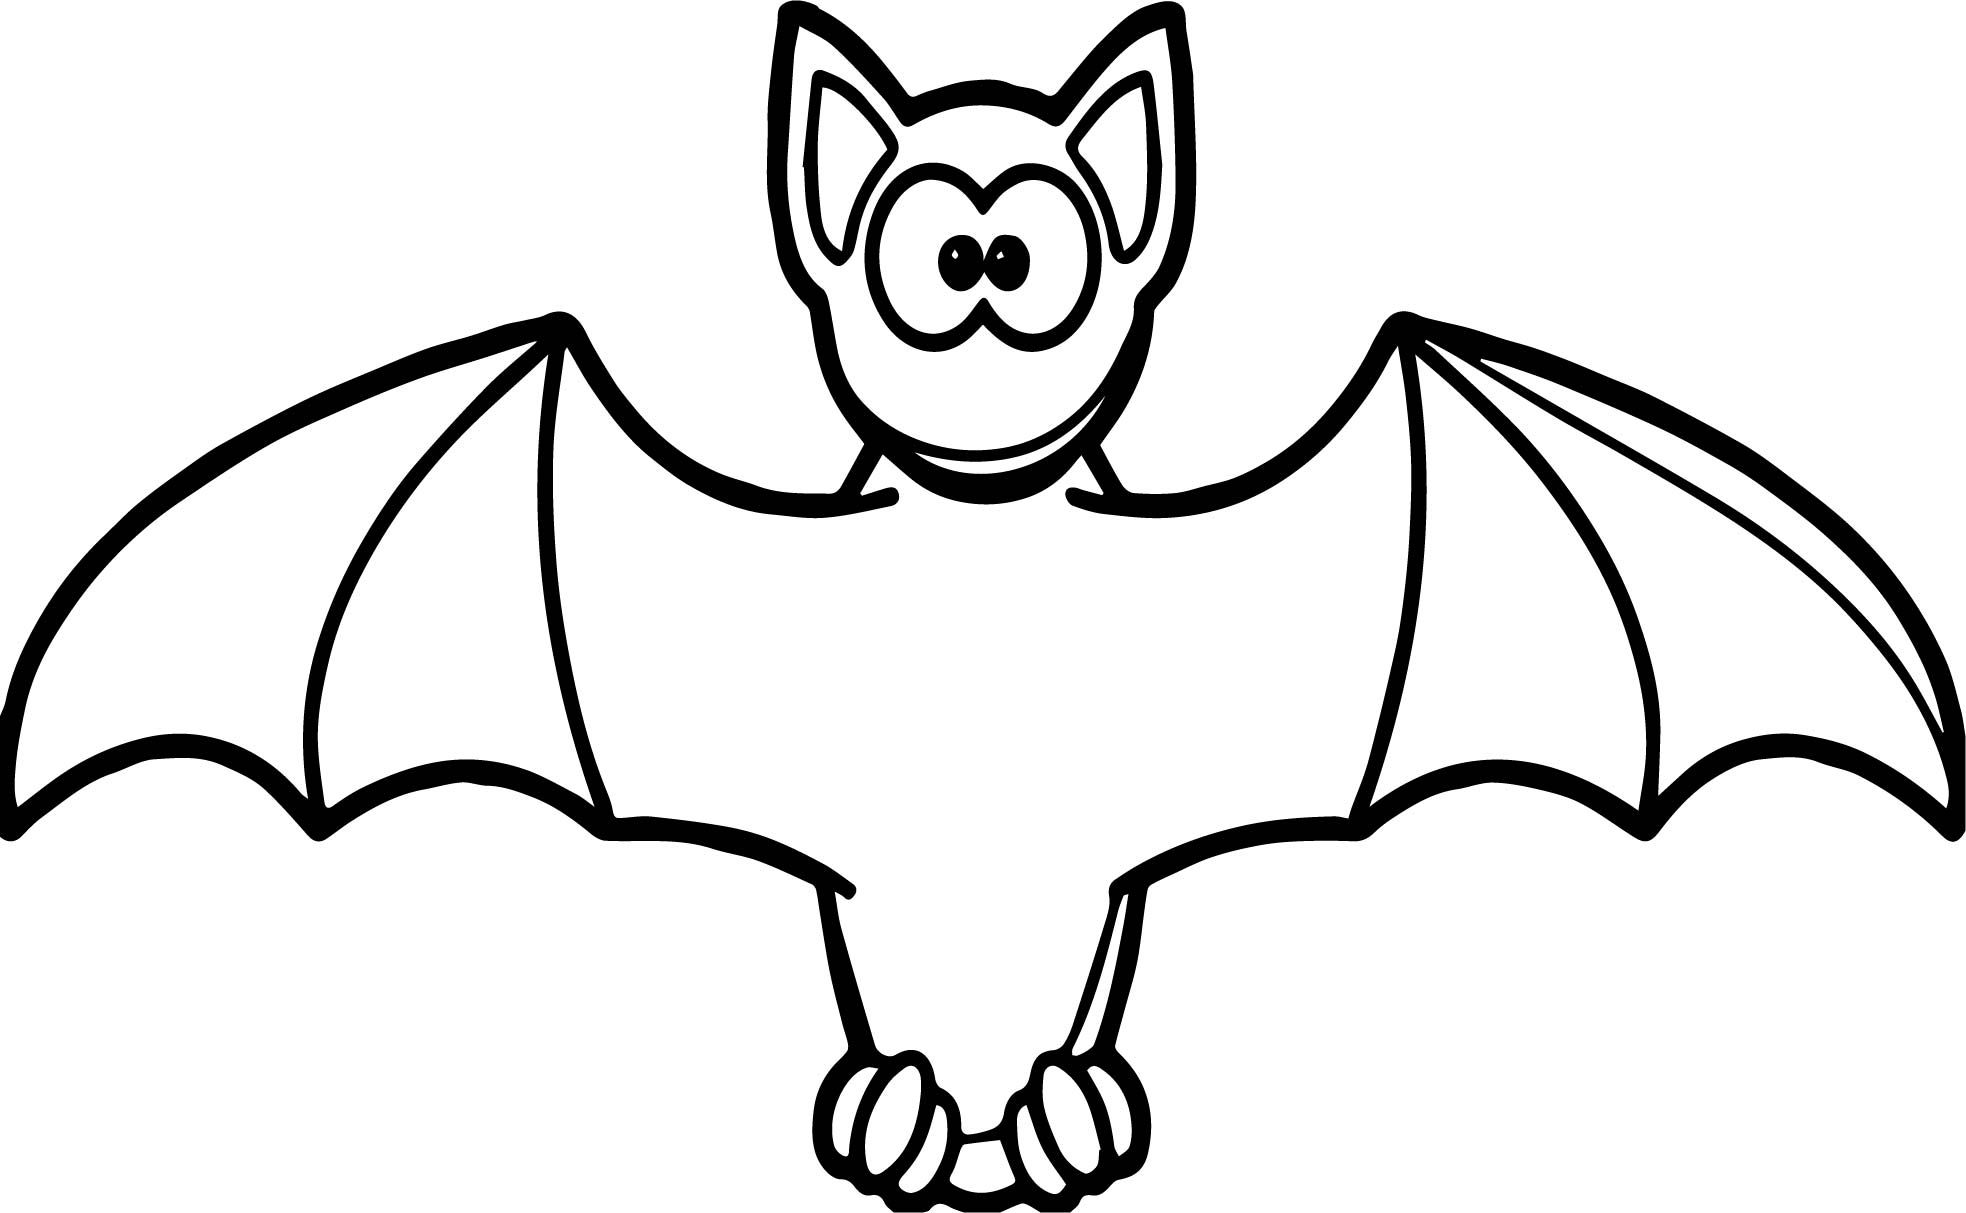 Animal Bat Coloring Pages Http Www Kidscp Com Animal Bat